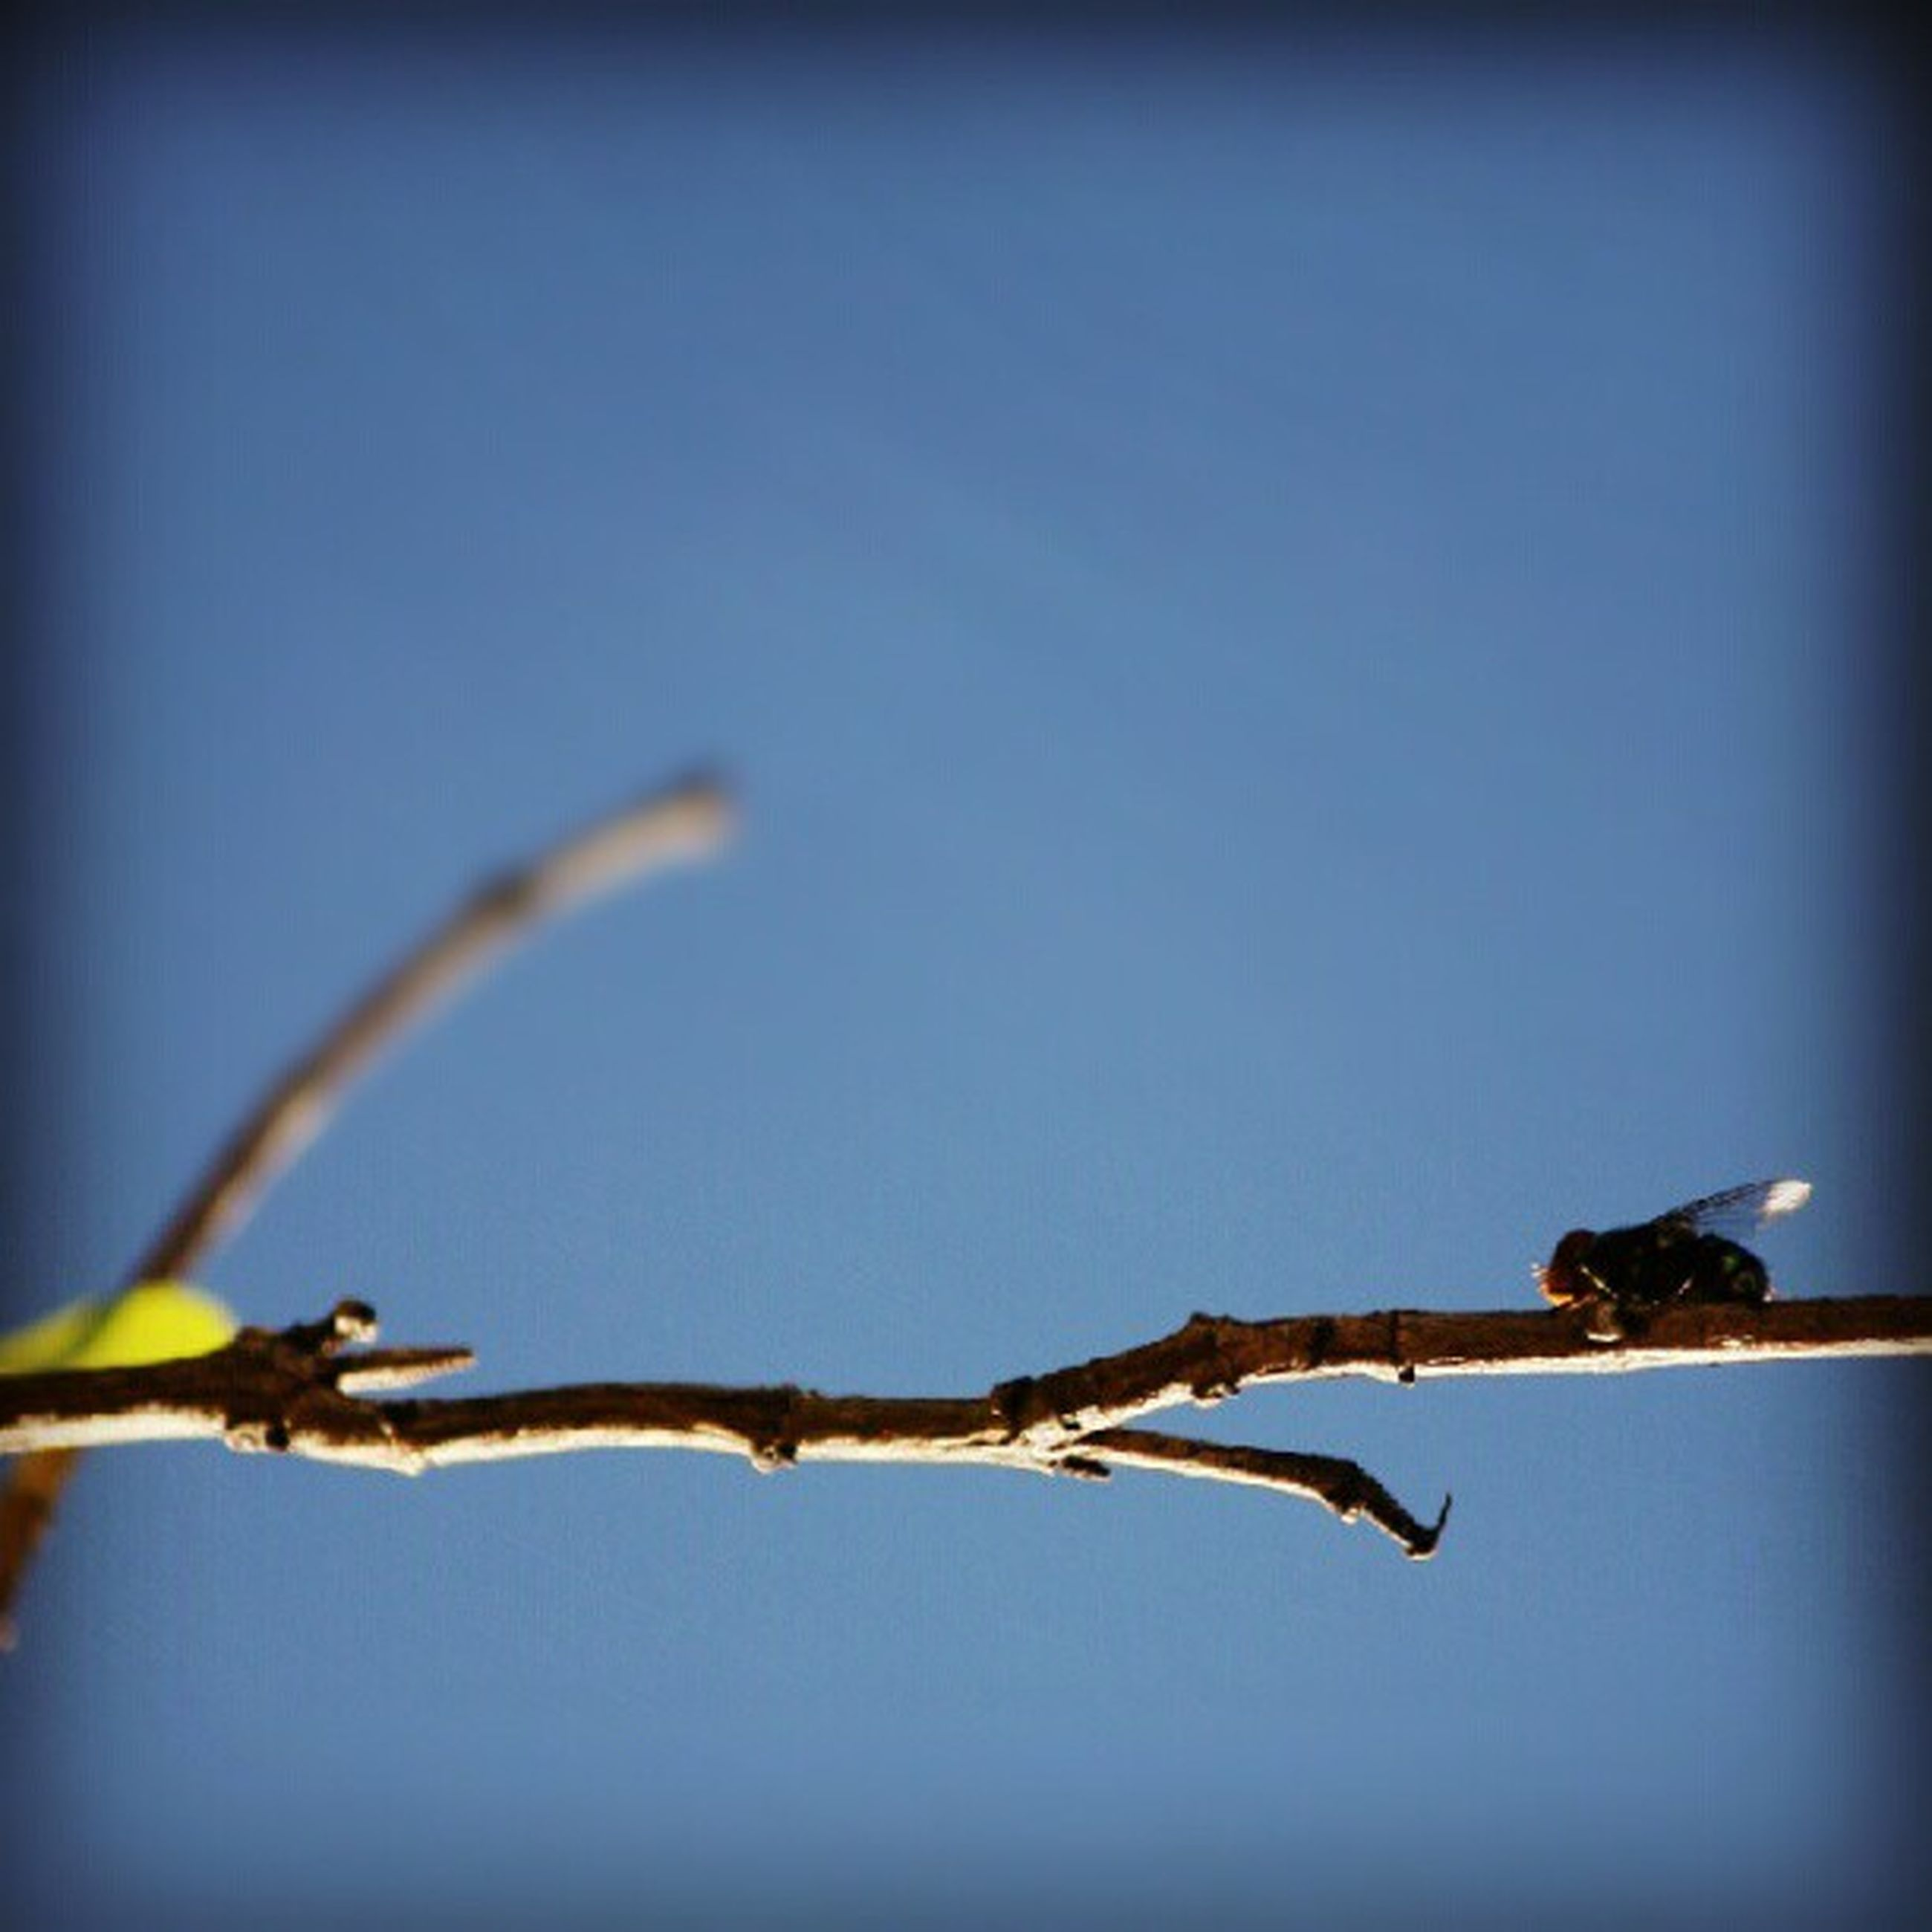 clear sky, focus on foreground, twig, branch, close-up, copy space, perching, low angle view, barbed wire, nature, stem, animal themes, wildlife, outdoors, day, selective focus, no people, fence, blue, protection